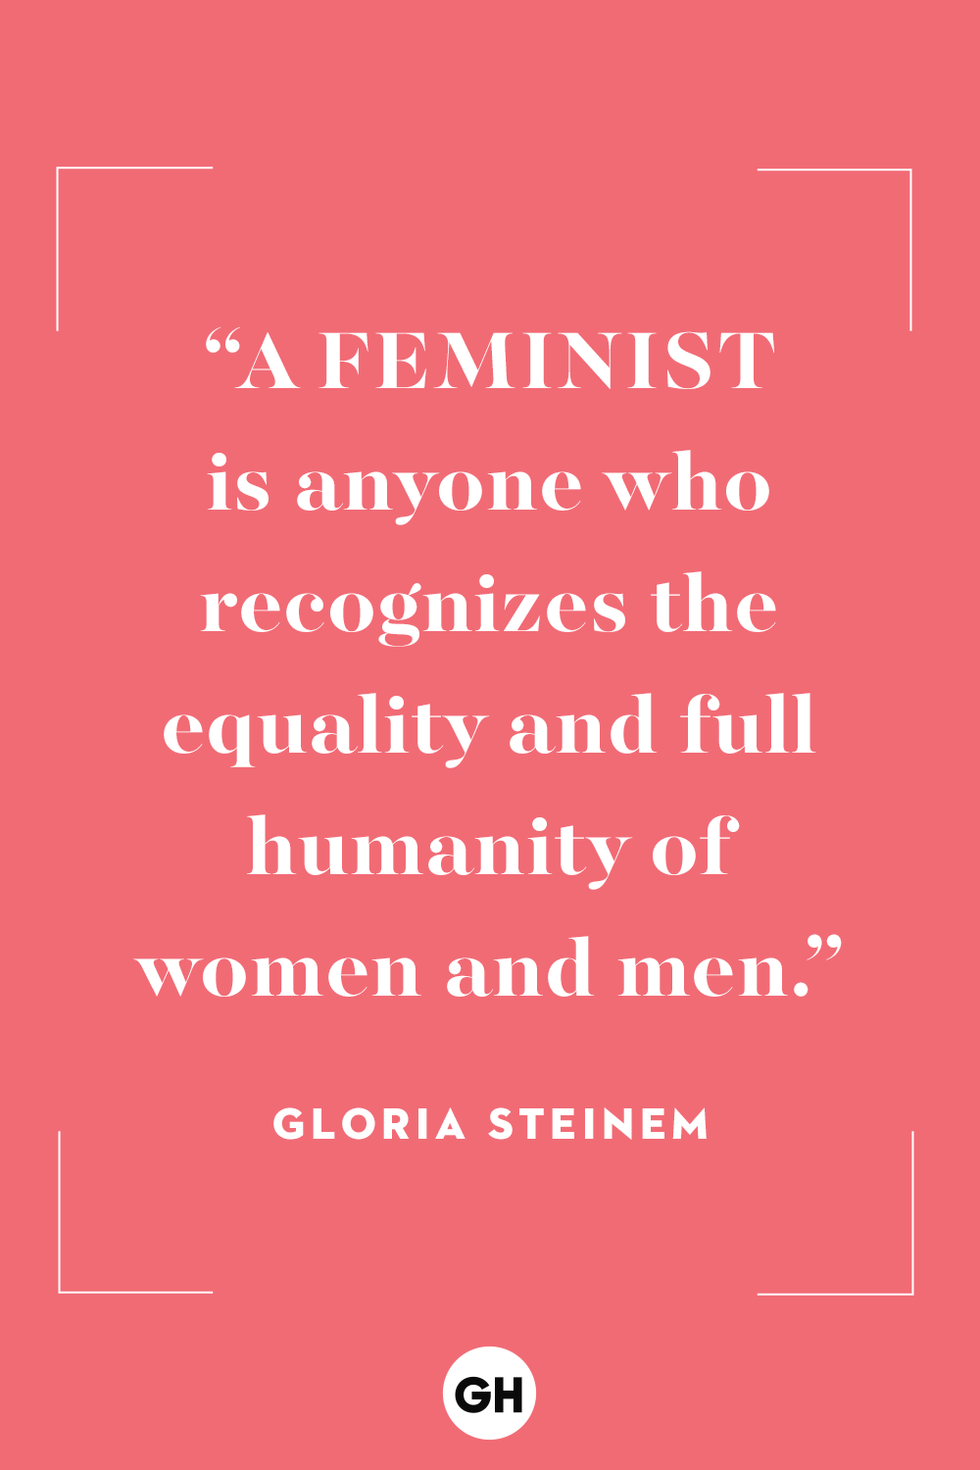 21 Most Empowering Feminist Quotes of All Time in 2020